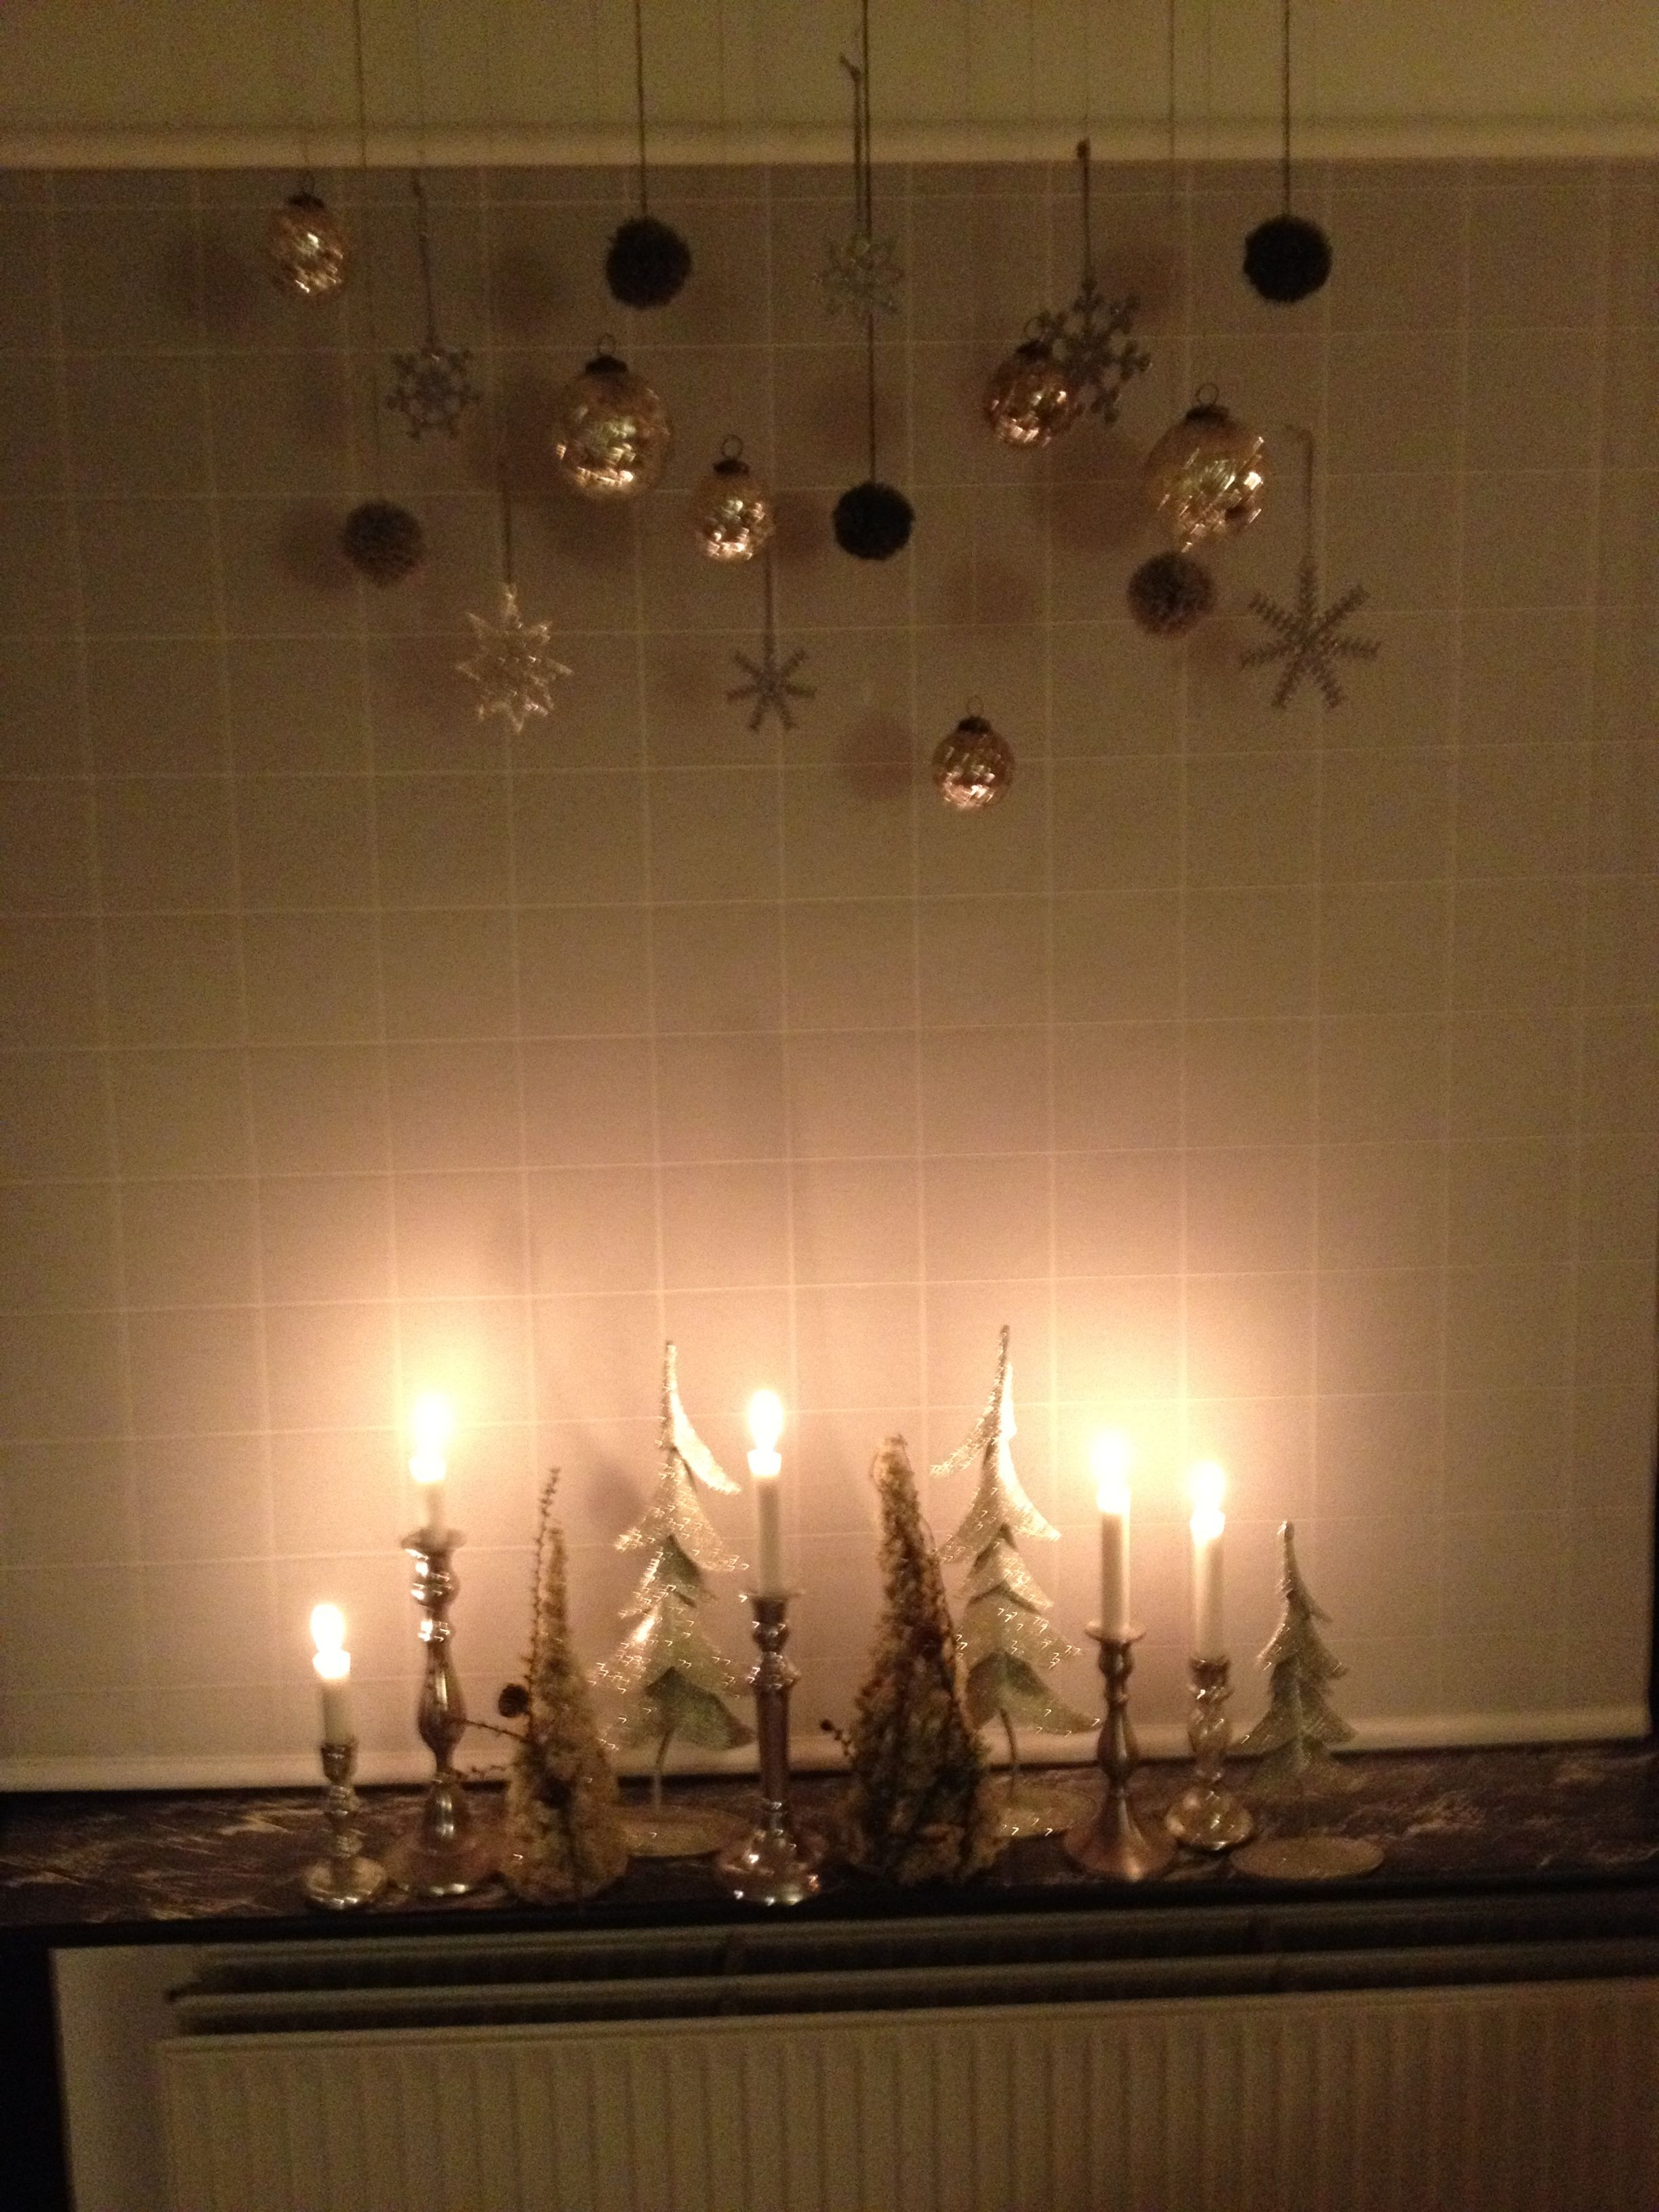 Diverse ophæng (uld pomponer, glaskugler, stjerner) over lysestager. Lysene får ophængene til at snore. / Ornaments and candles. The candles make the ornaments spin.